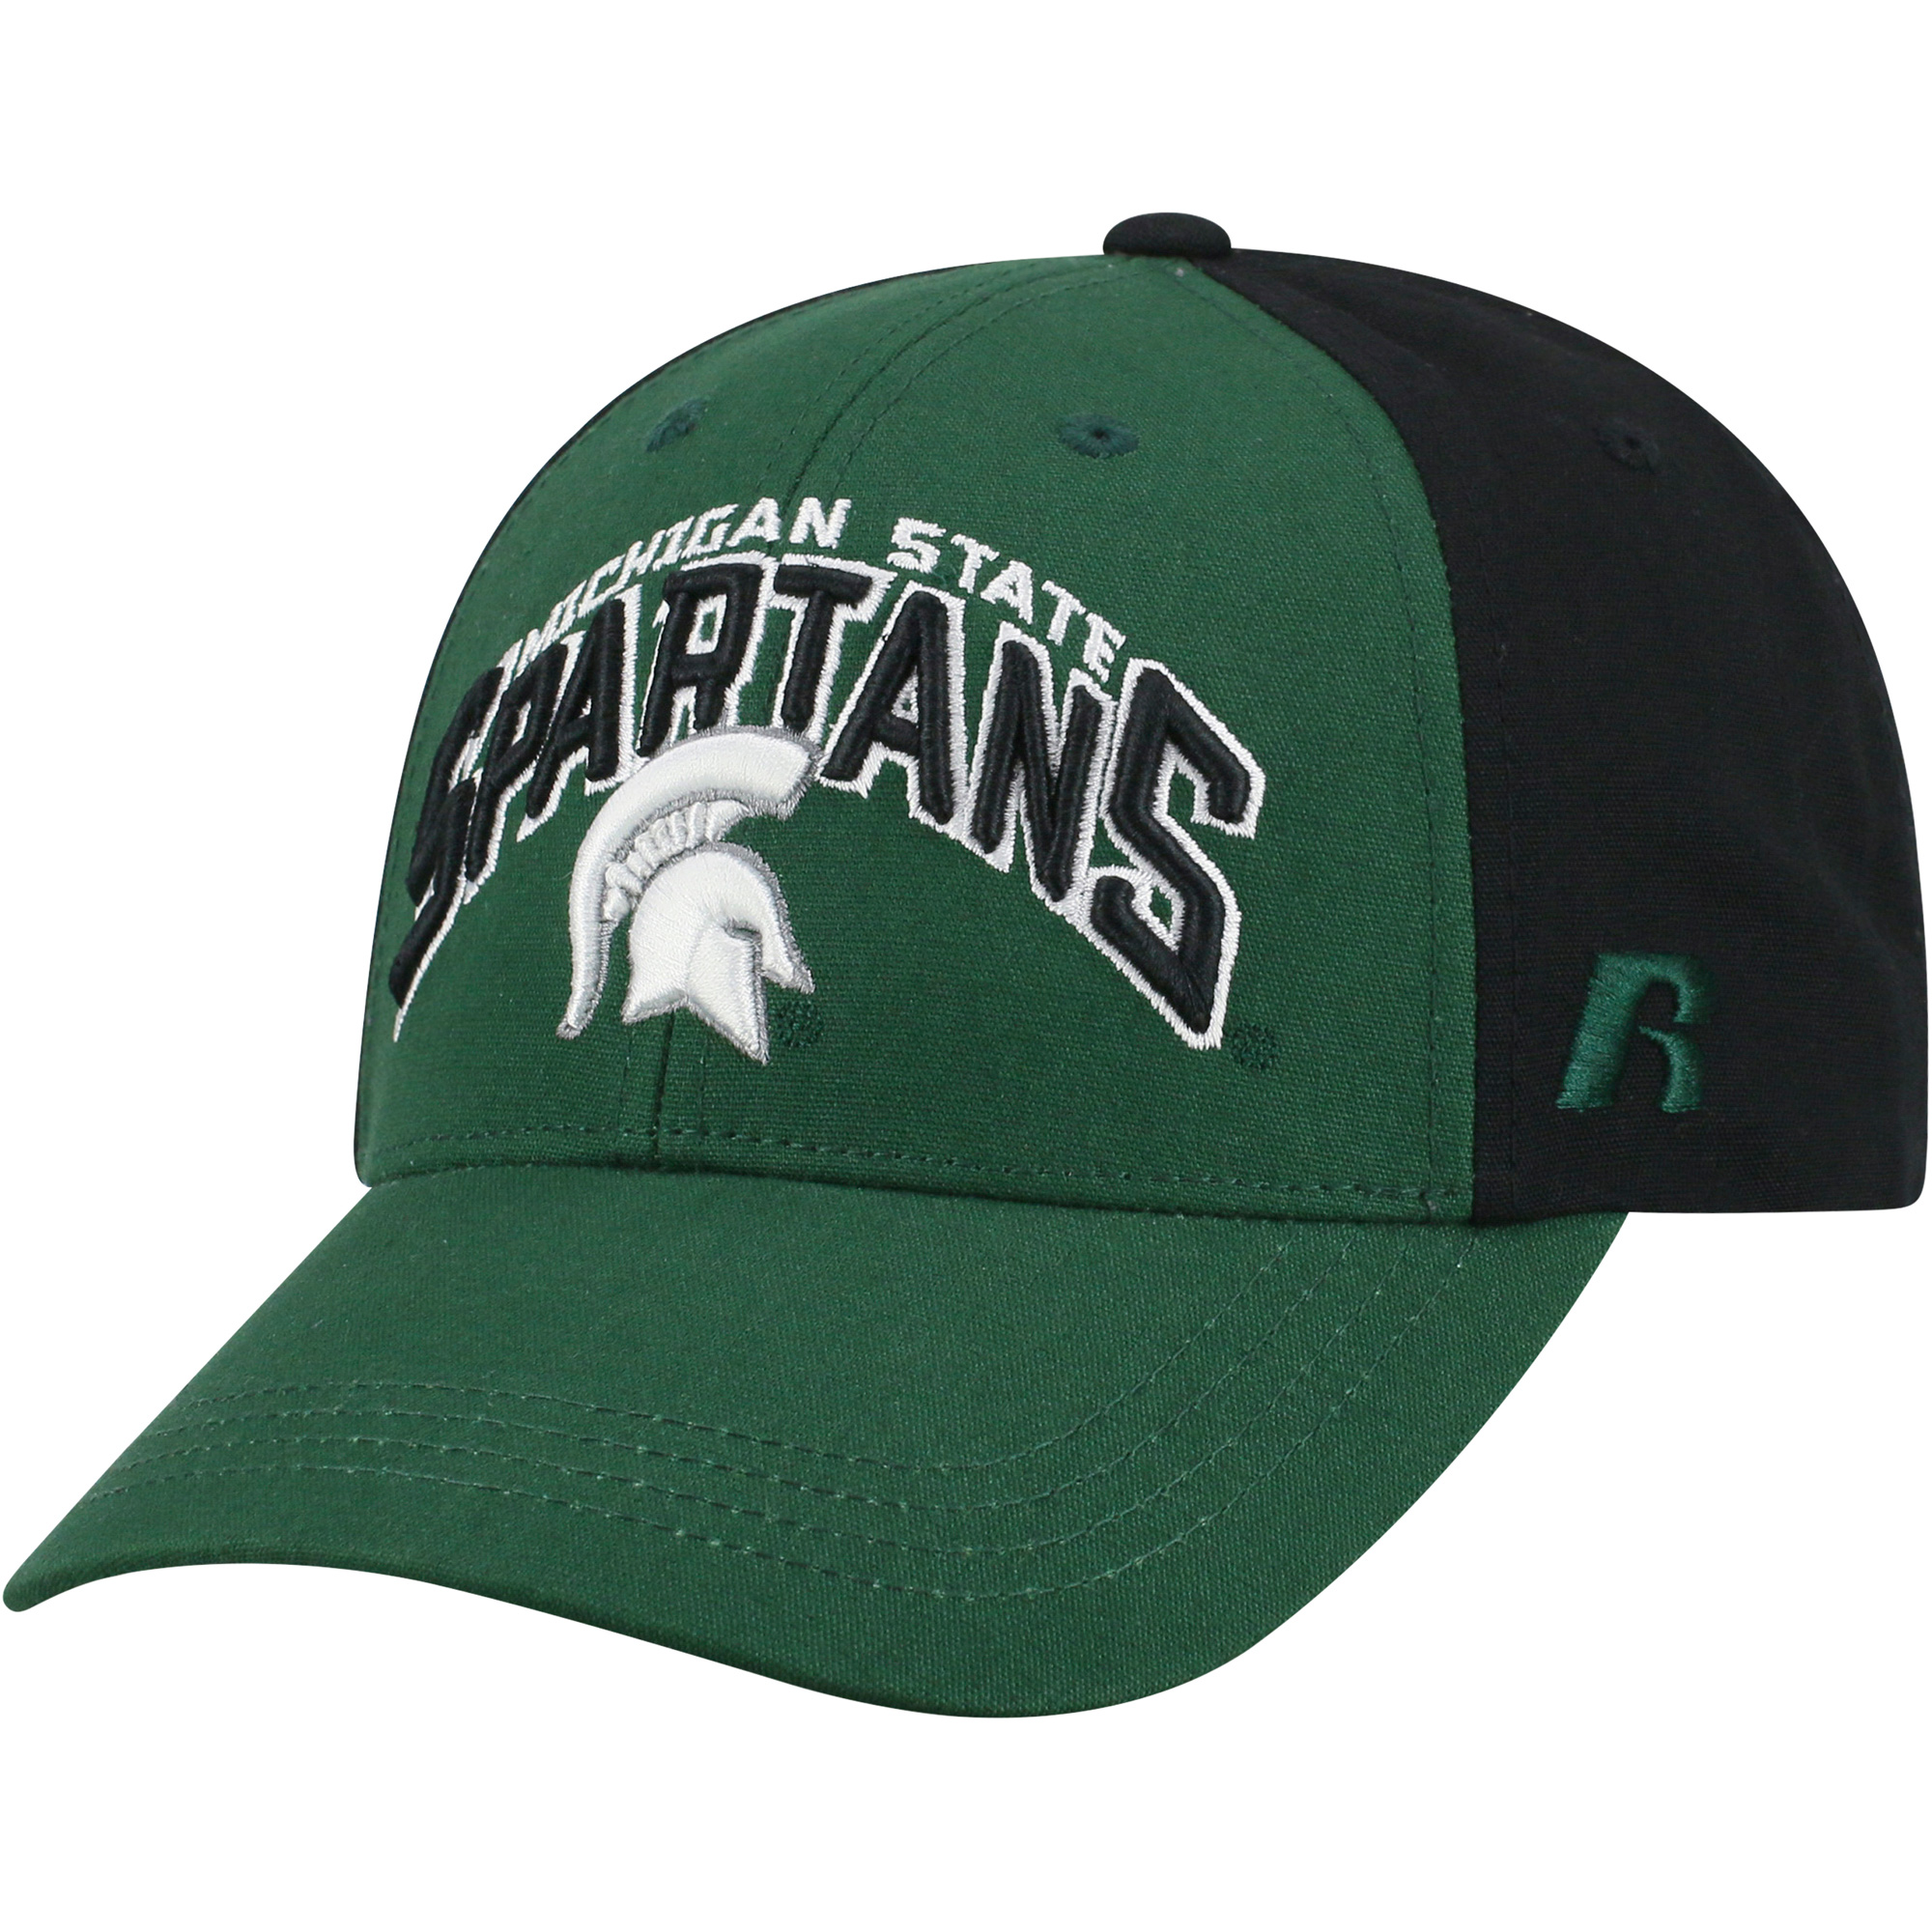 Men's Green/Black Michigan State Spartans Tastic Adjustable Hat - OSFA